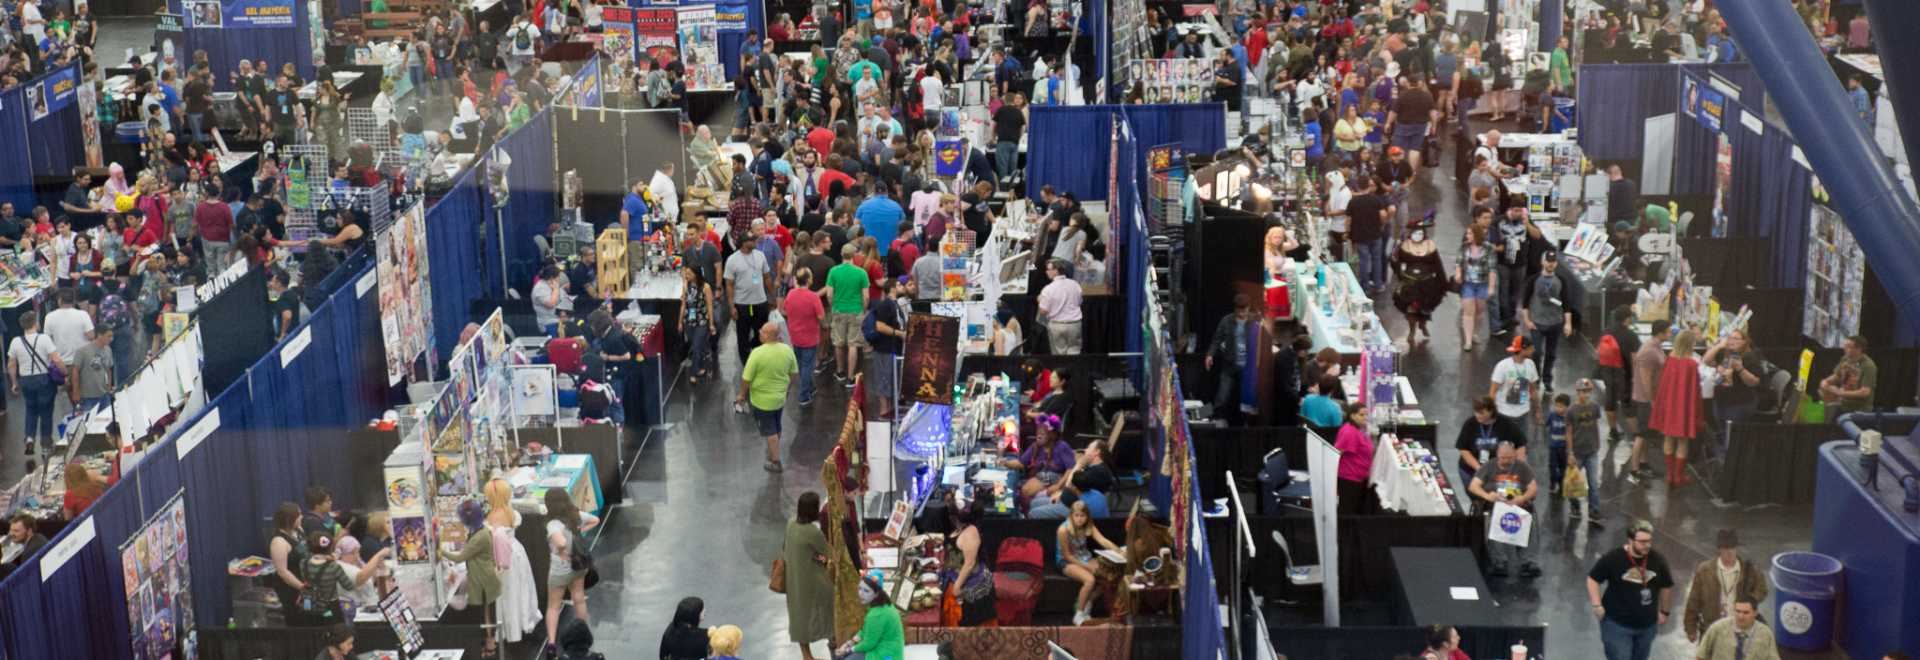 Crowd Comicpalooza